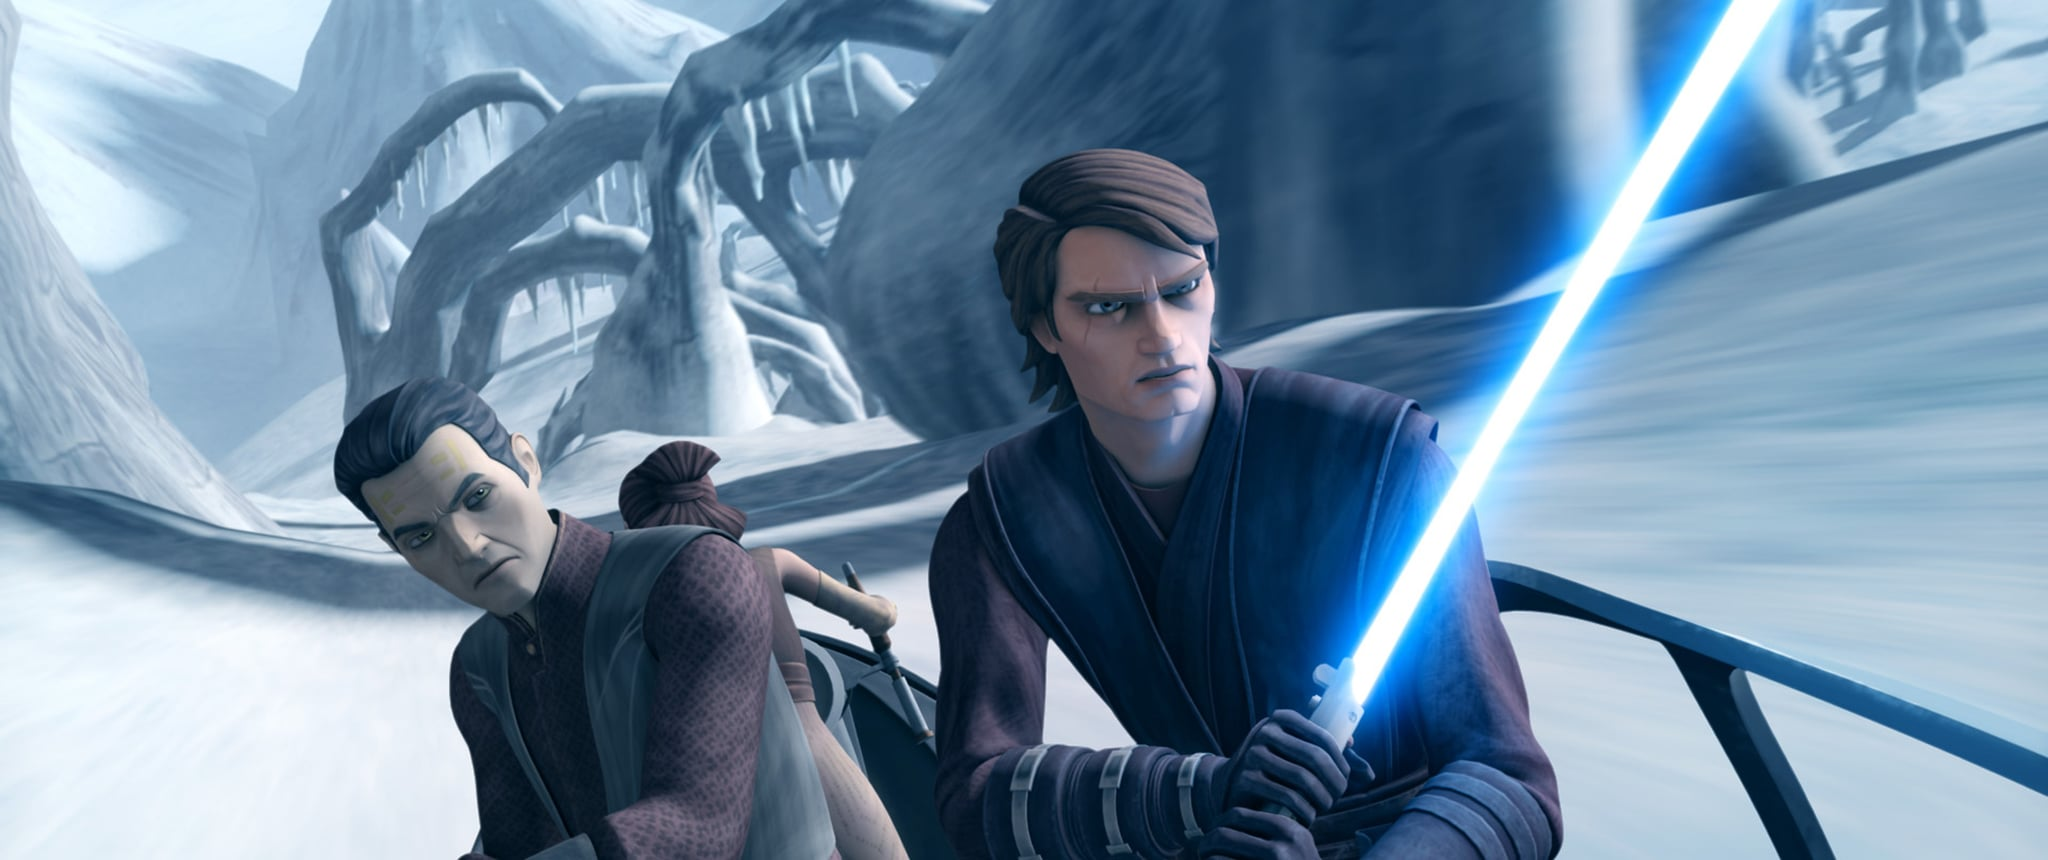 STAR WARS: THE CLONE WARS, Anakin Skywalker (right), (Season 6), 2008-14.  Lucasfilm Ltd./Netflix / Courtesy: Everett Collection